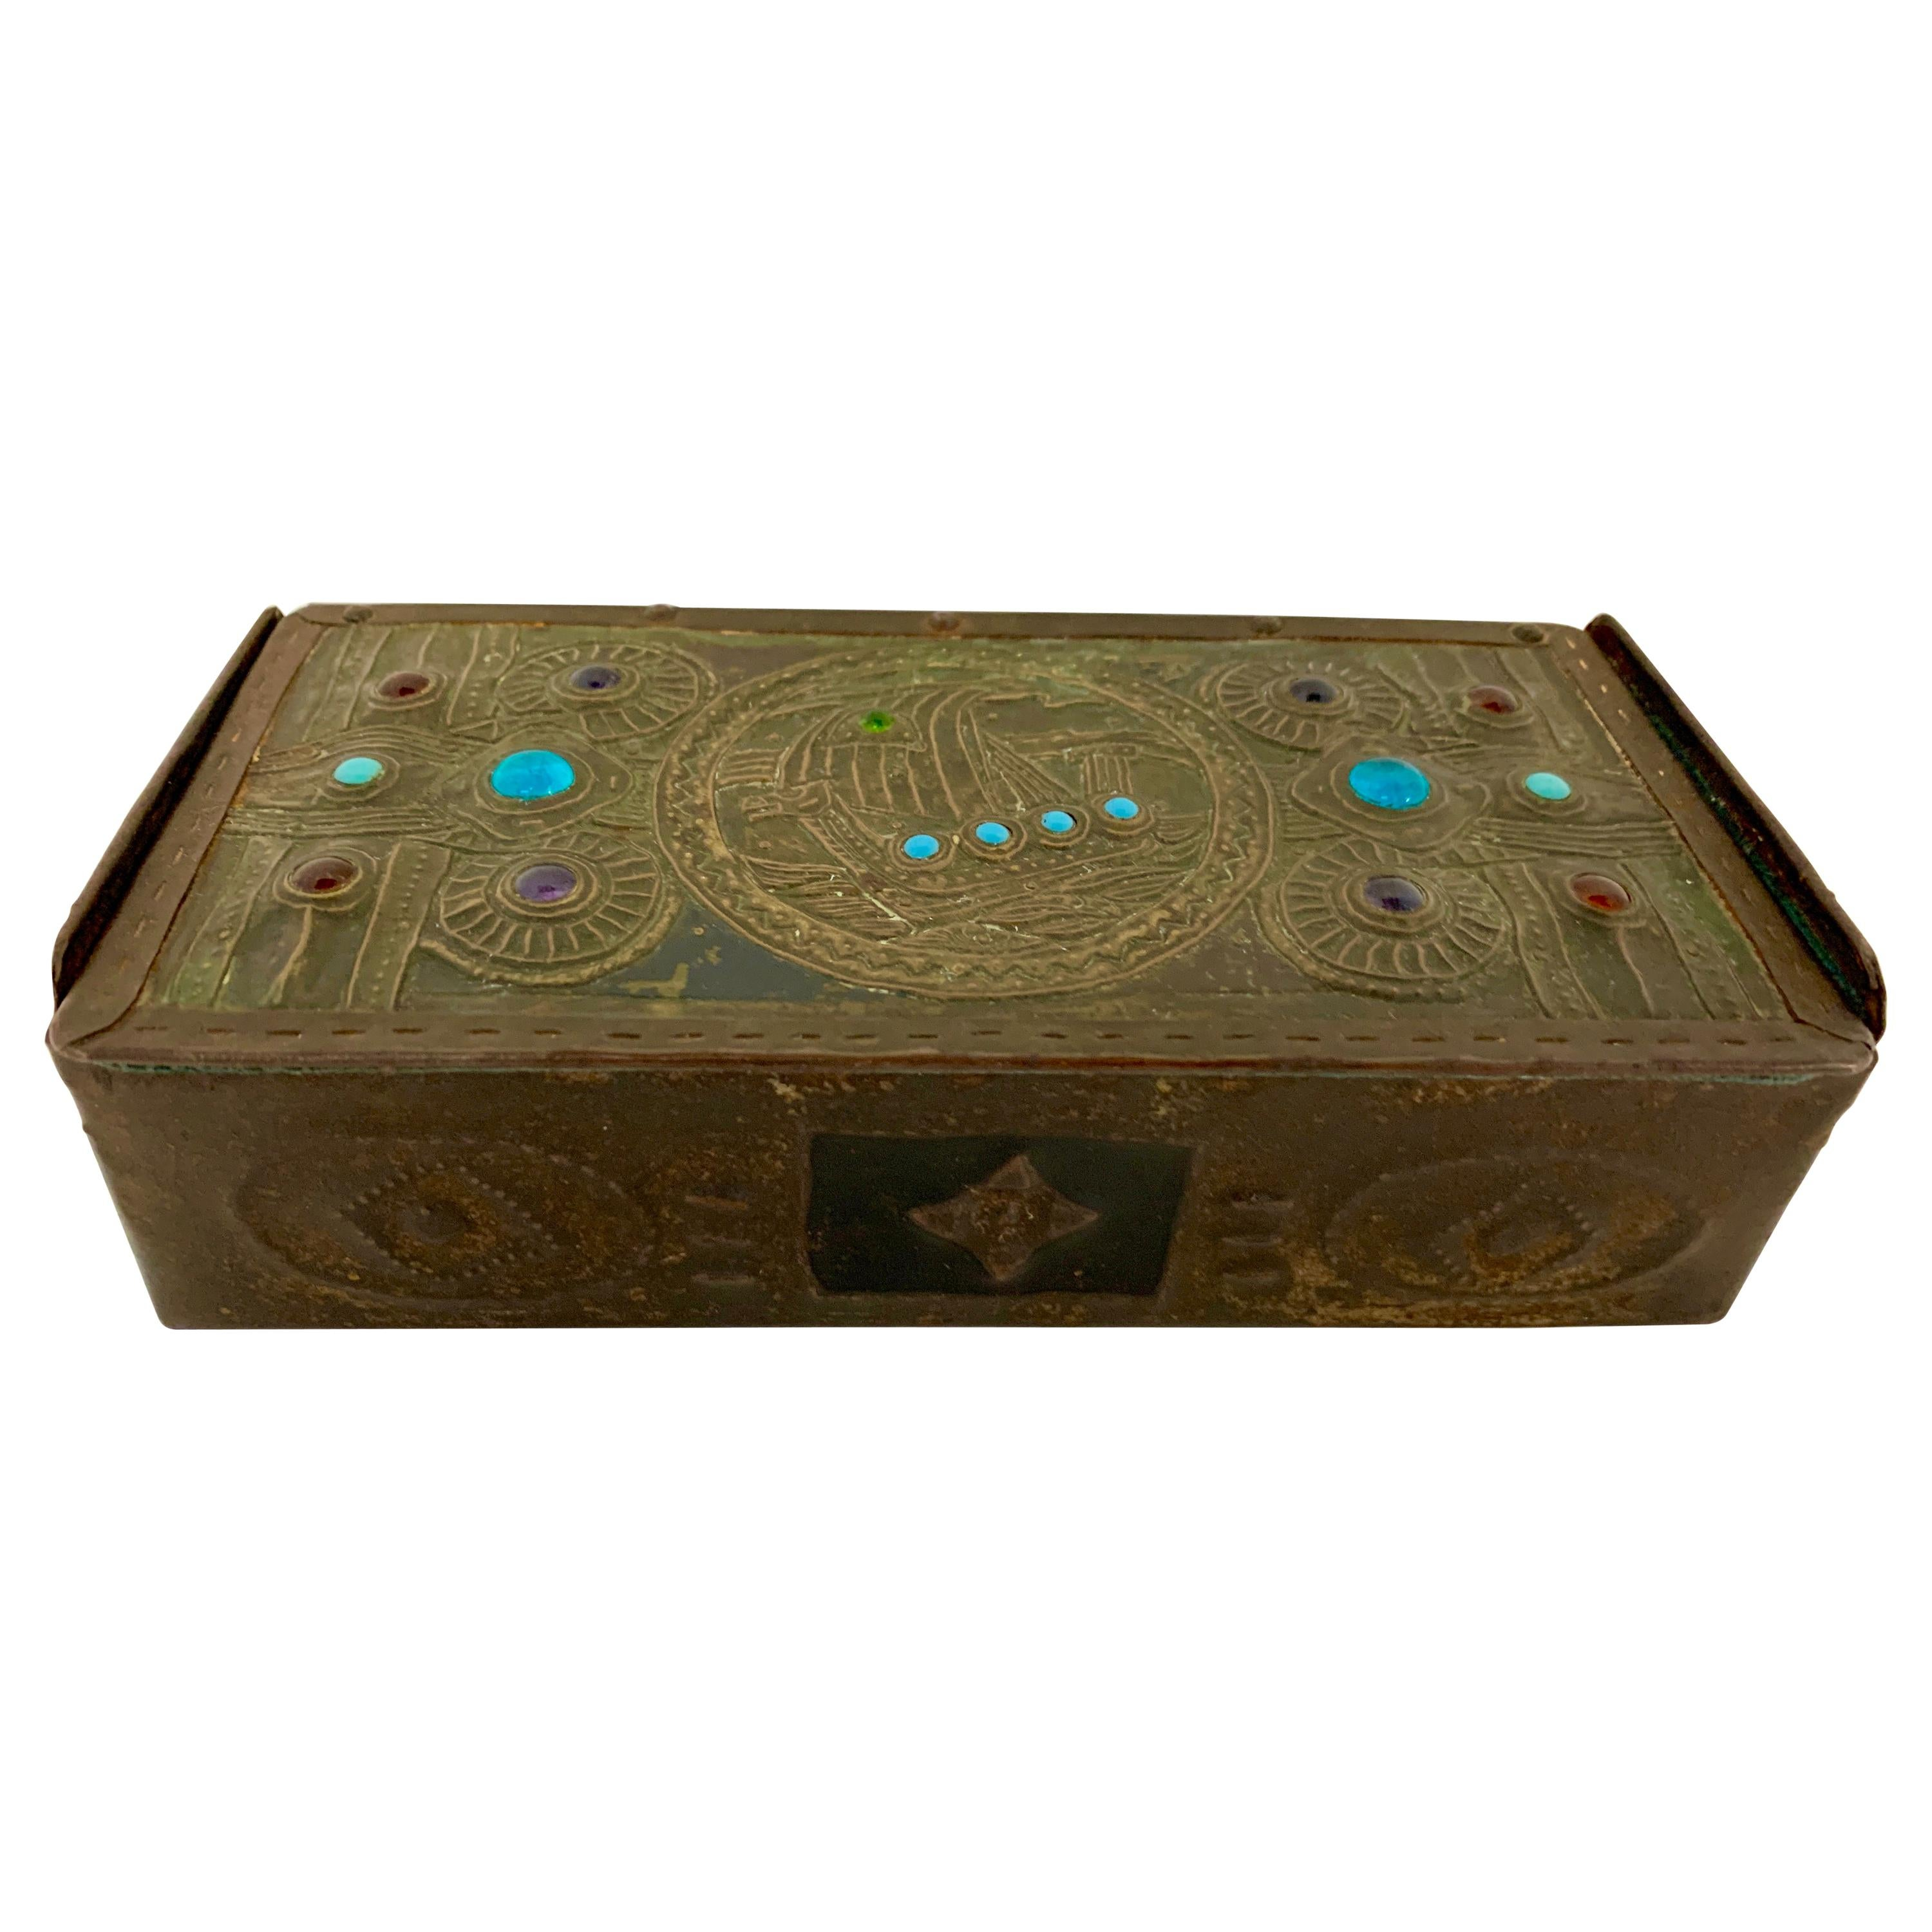 Alfred Daguet Jeweled Box